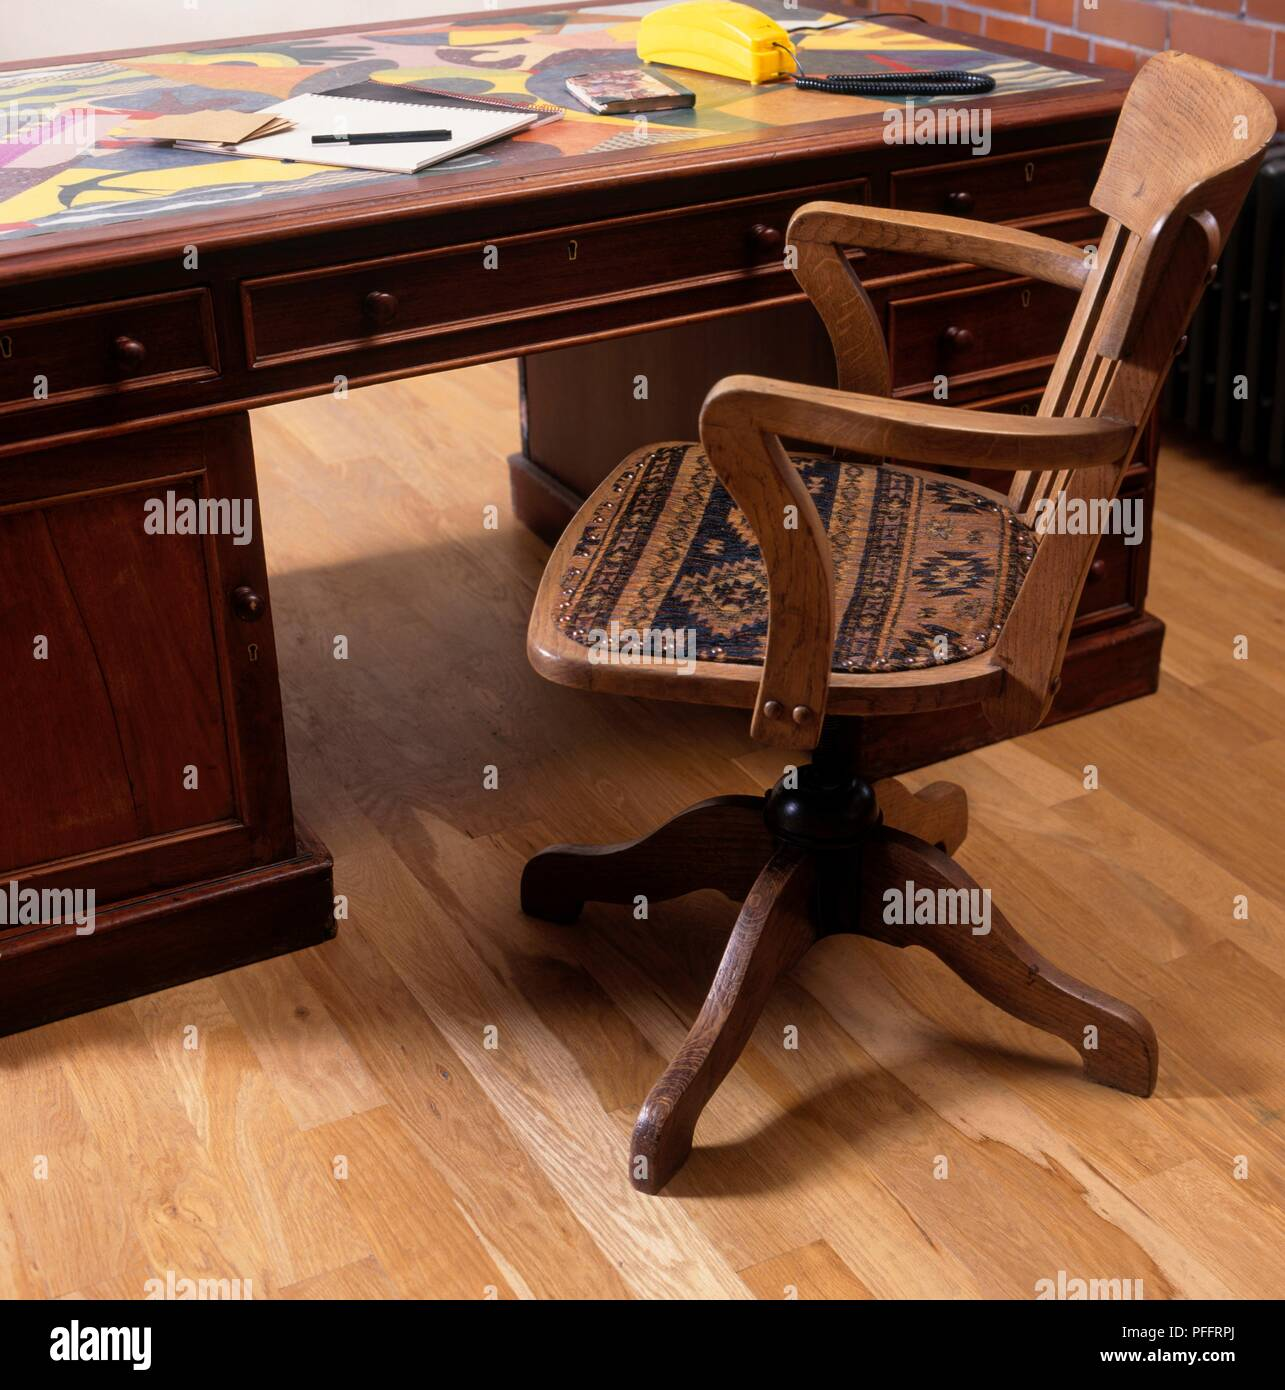 Antique Wooden Desk And Upholstered Office Chair Stock Photo Alamy